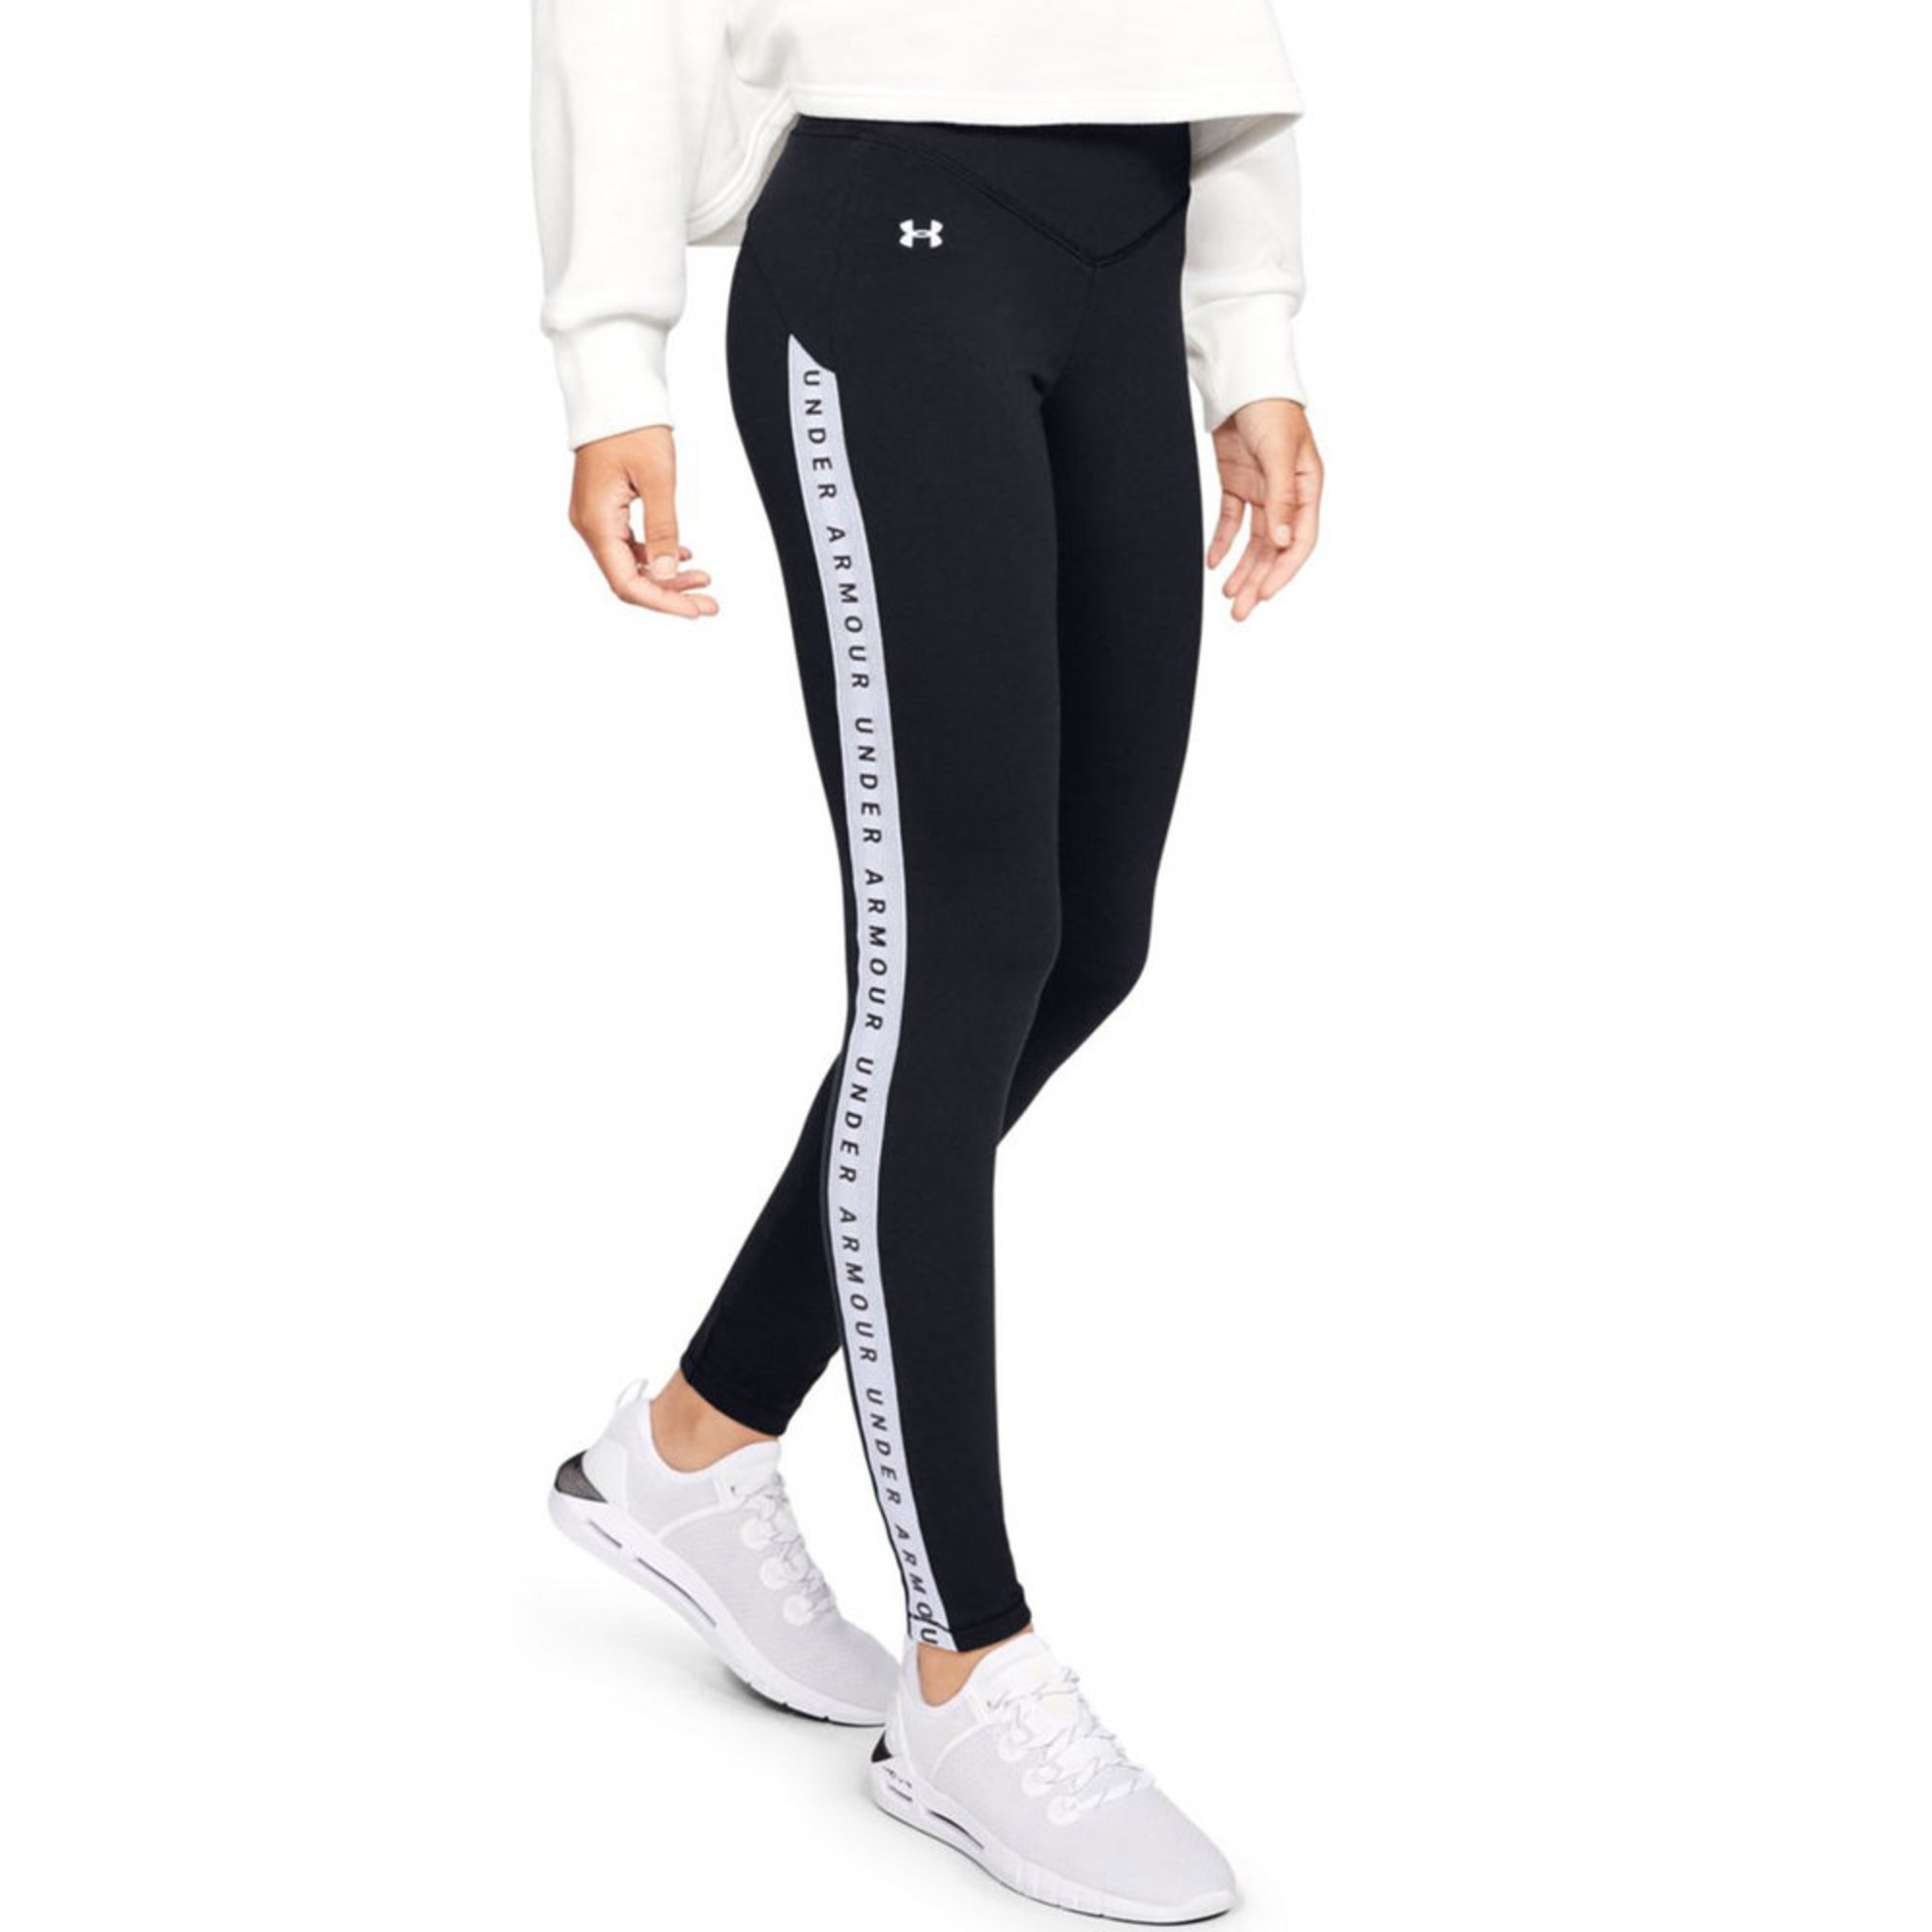 edf4ab5fcecdc4 Under Armour Women's Taped Favorite Leggings | Active Leggings ...